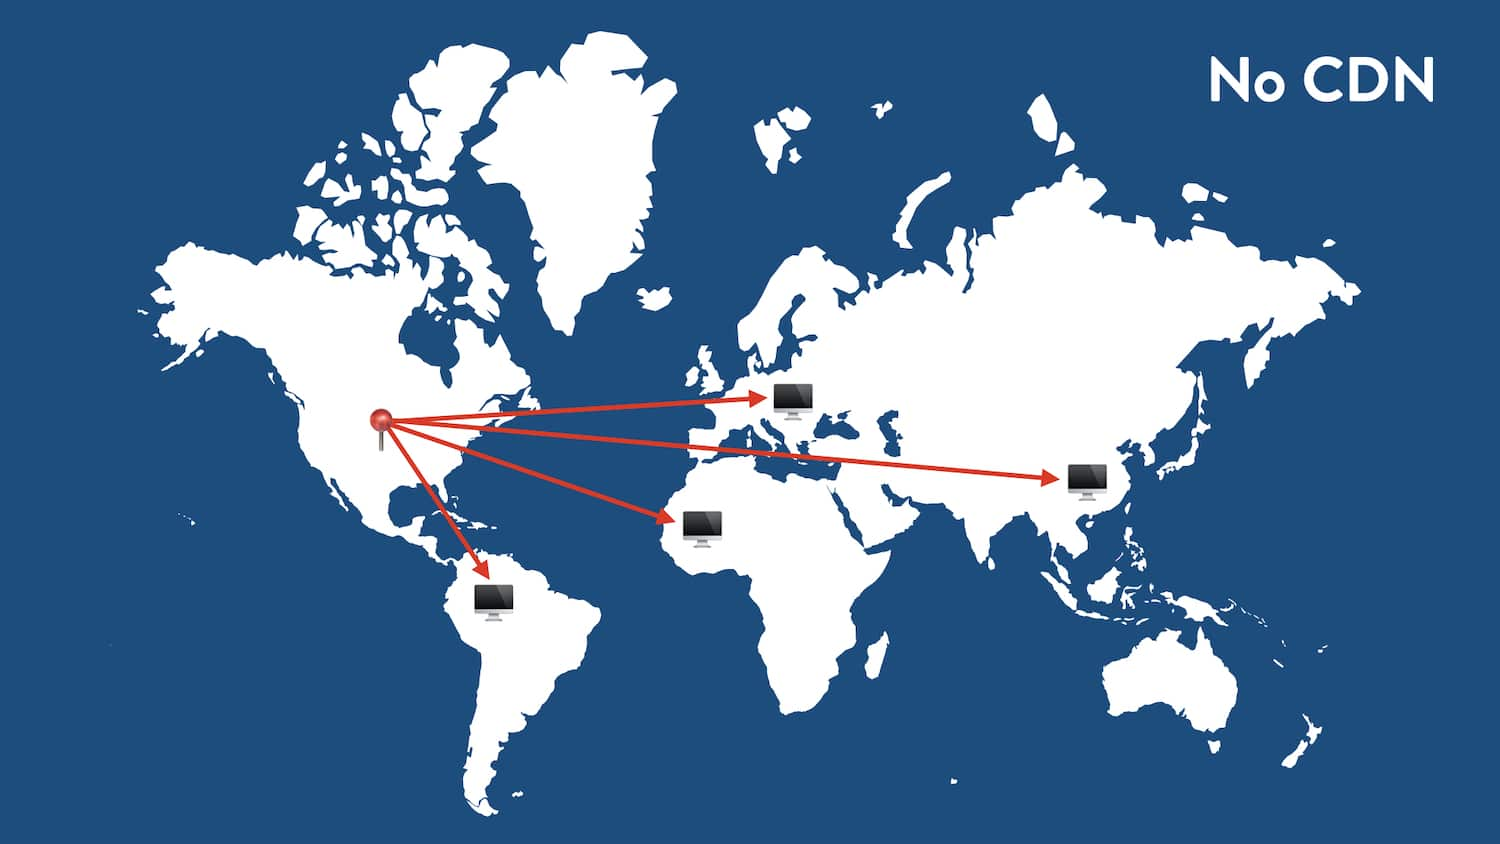 Global traffic routing with no CDN.